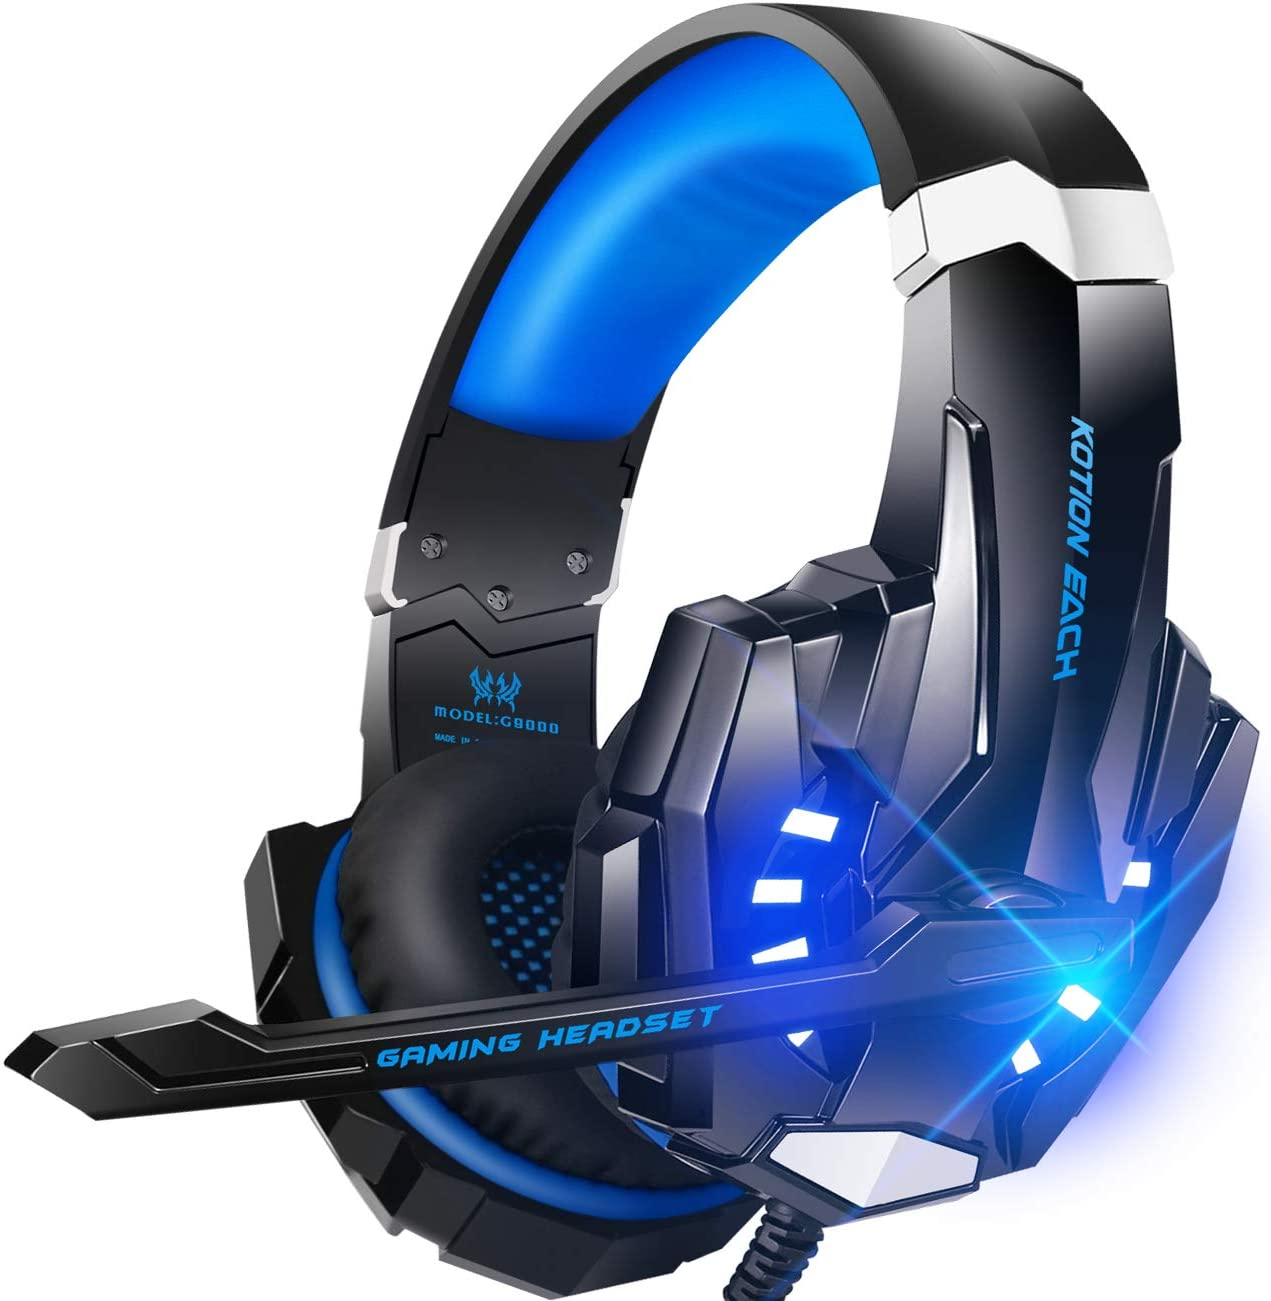 Features of BENGOO G9000 Stereo Gaming Headset